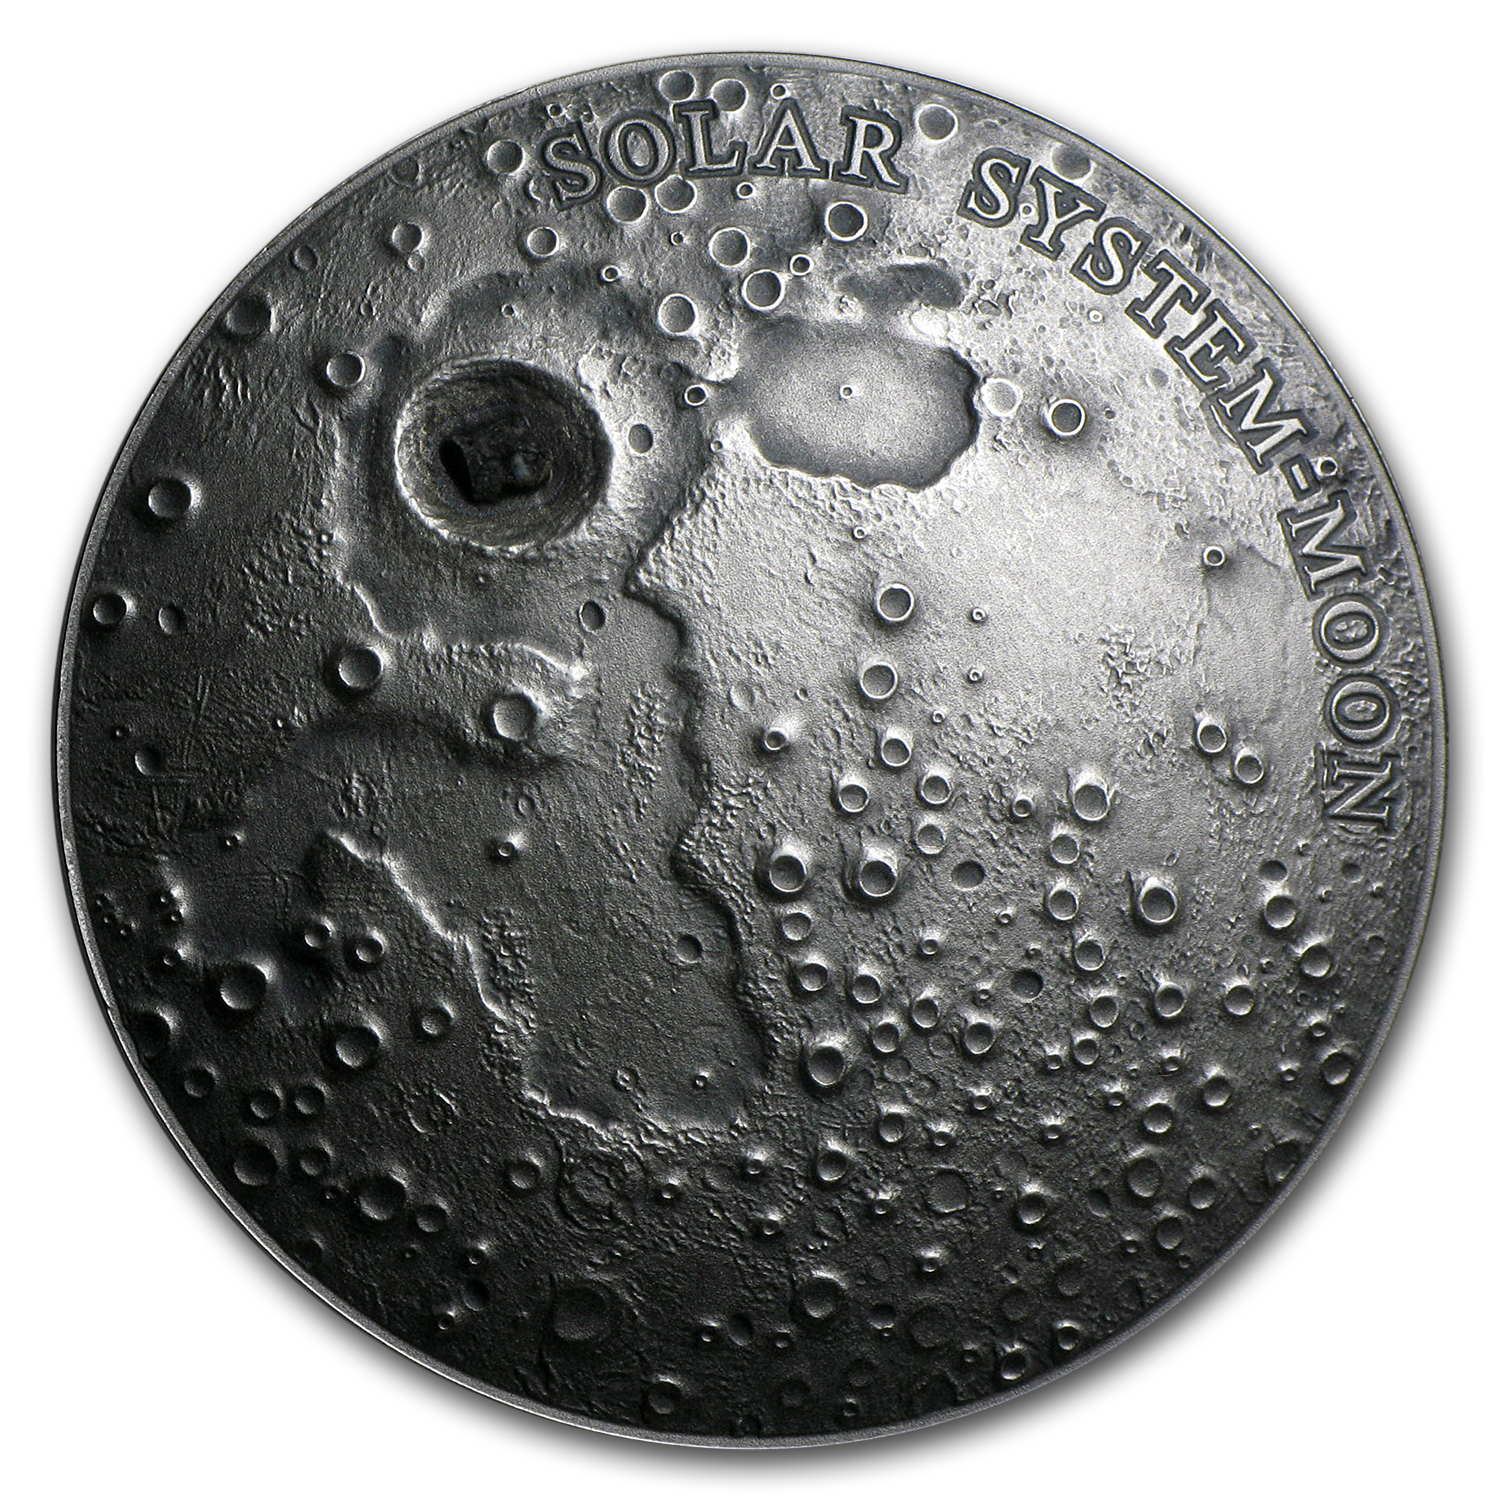 2015 Niue 1 oz Silver Ultra High Relief Solar System (Lunar Moon)